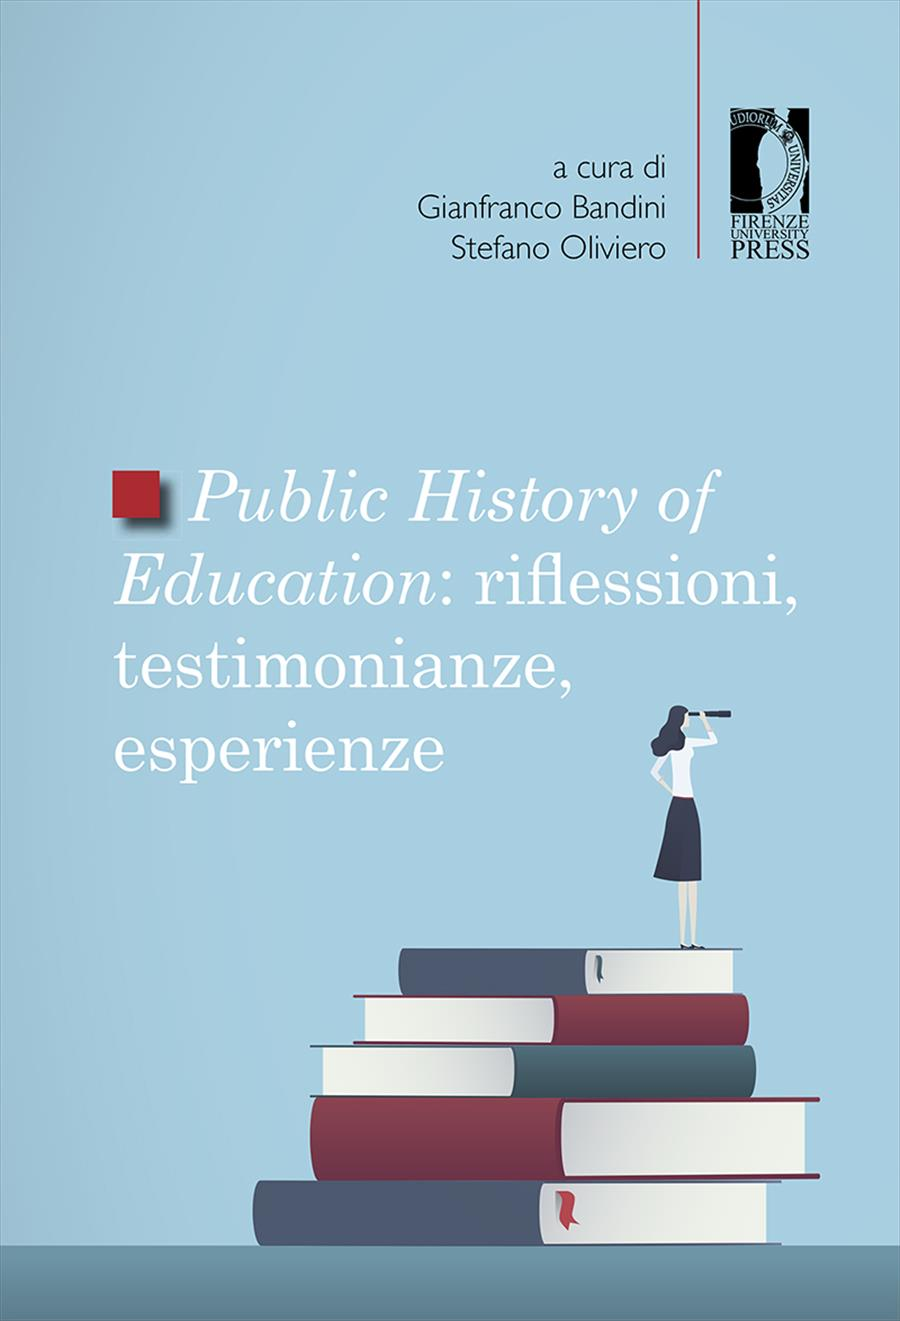 <i>Public History of Education</i>: riflessioni, testimonianze, esperienze